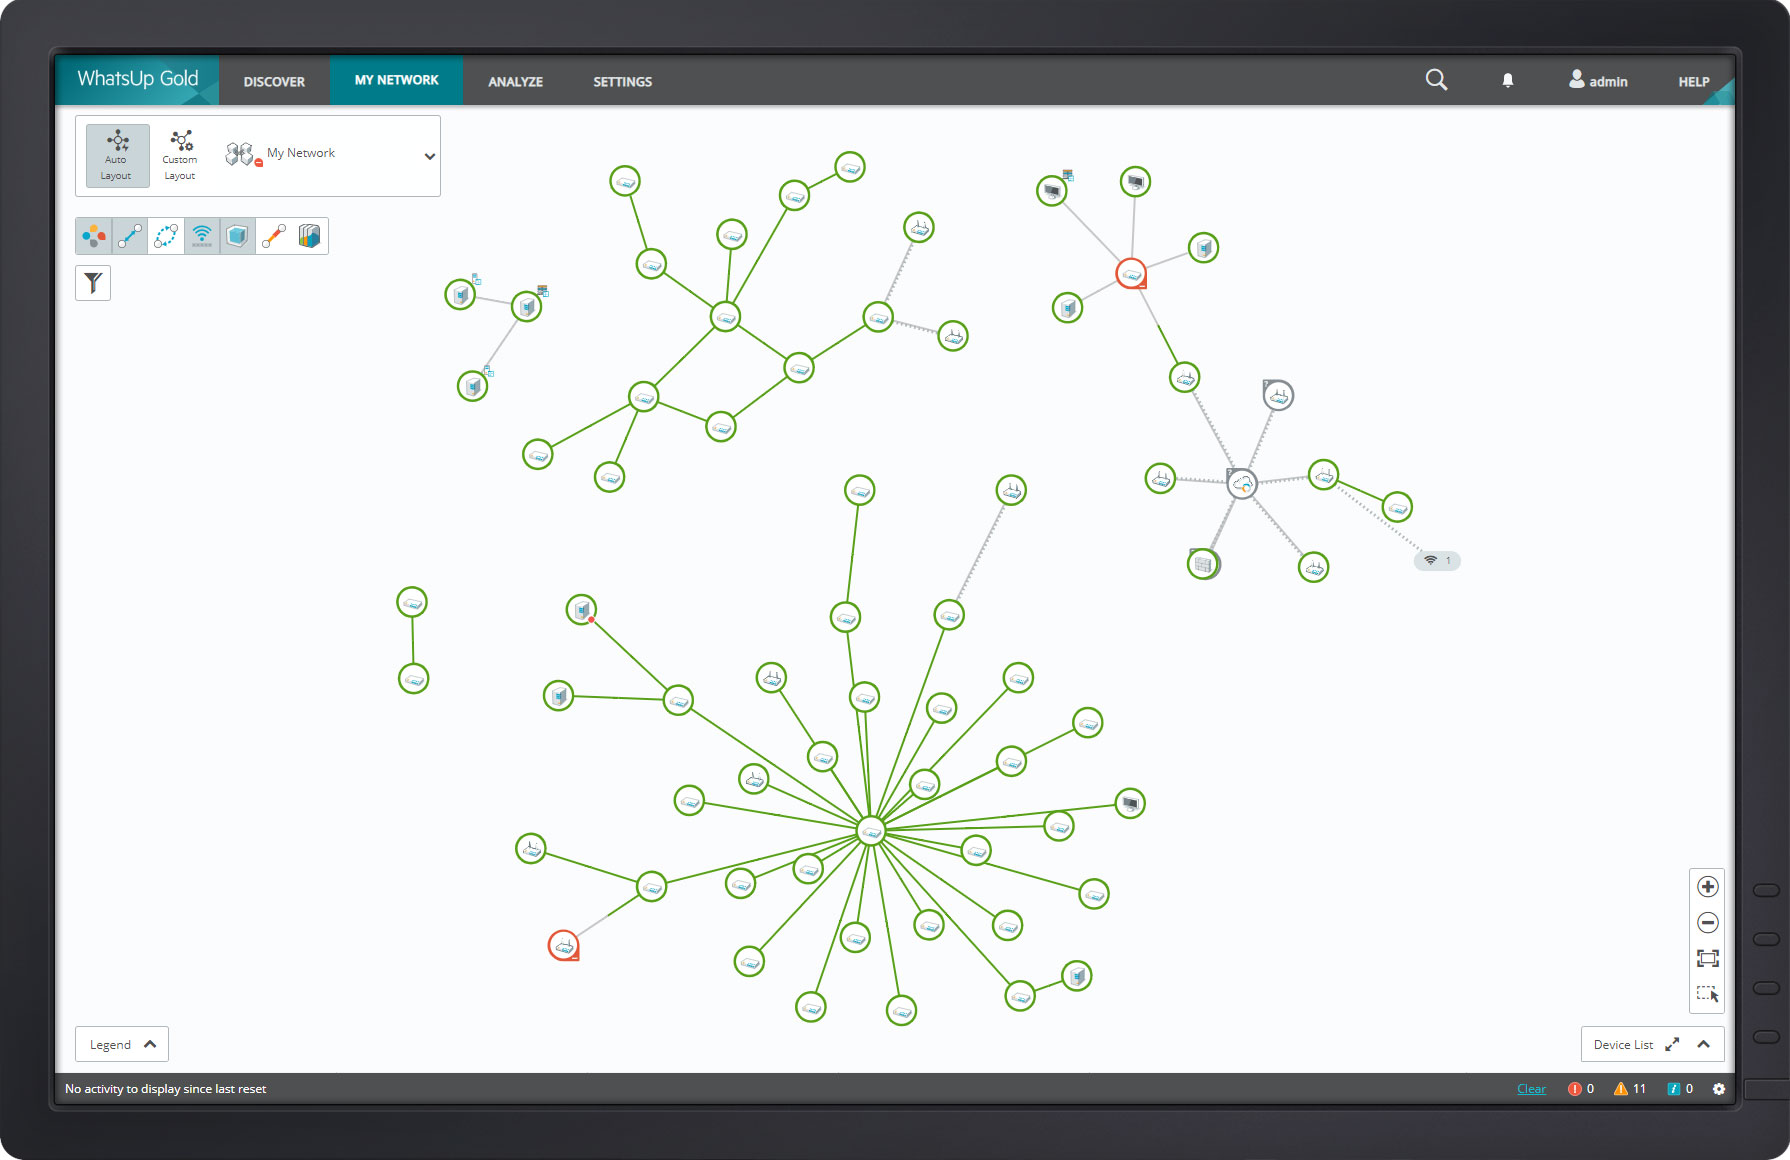 WhatsUp Gold Network Mapping